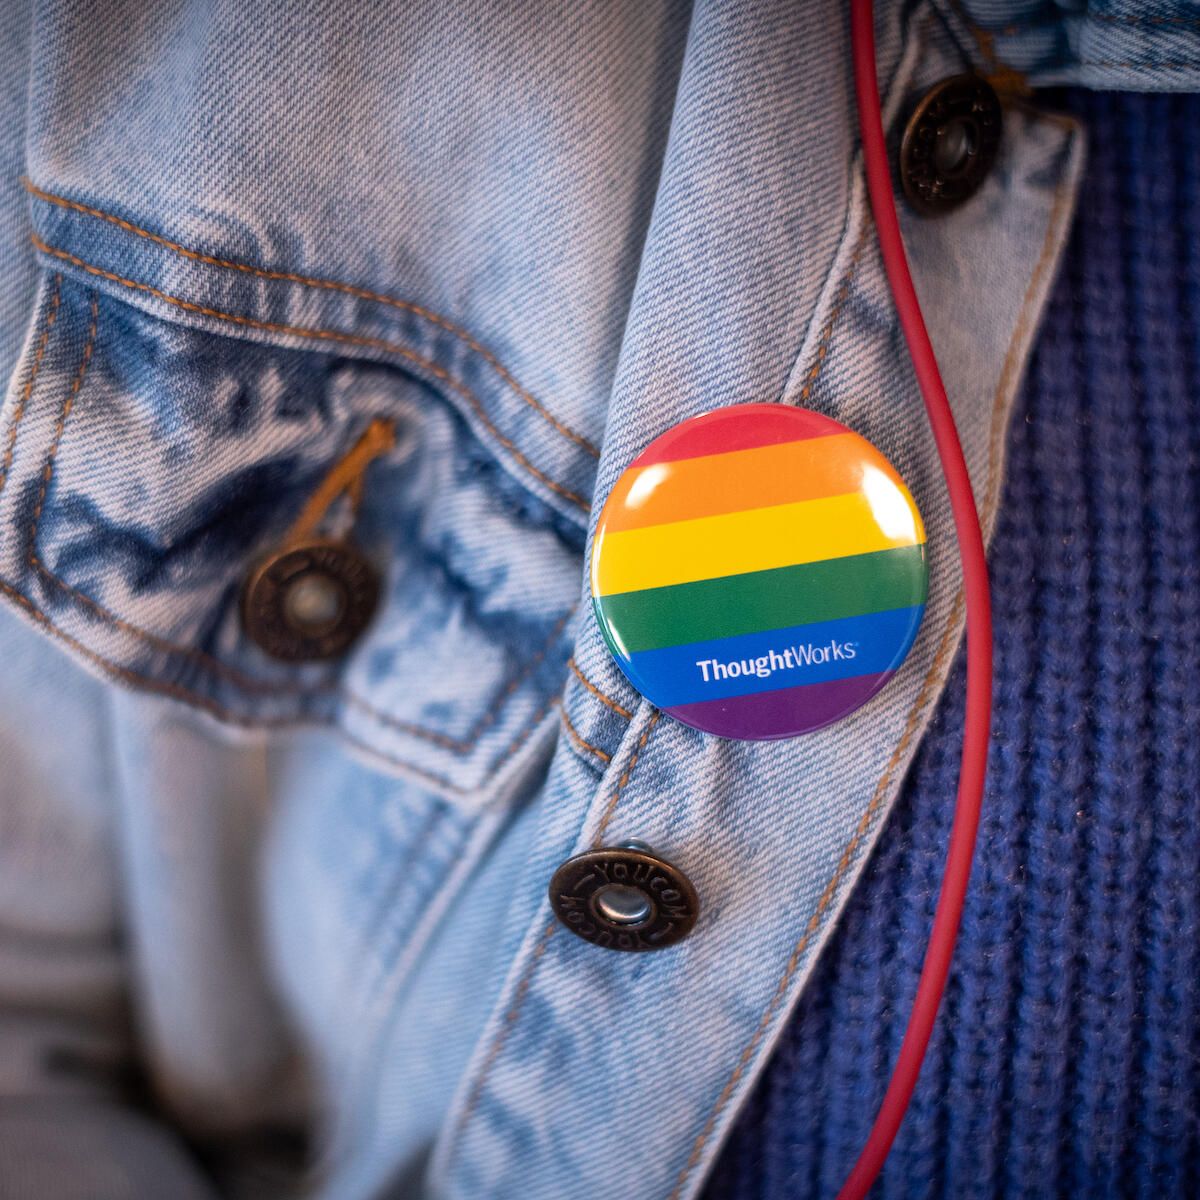 Image of a ThoughtWorks pride rainbow badge